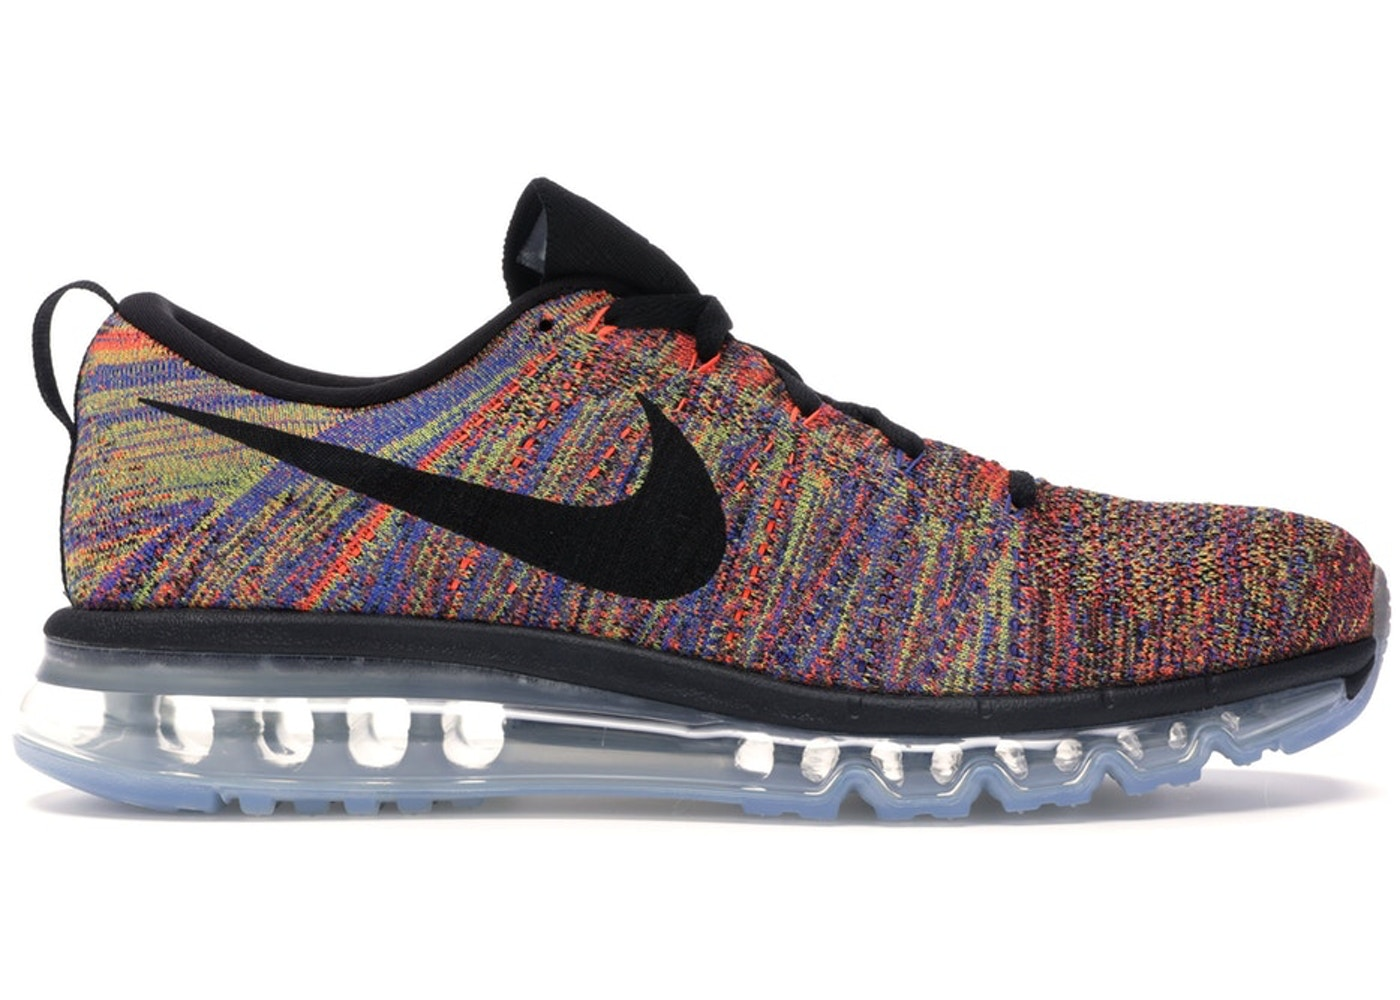 Nike Flyknit Air Max Multi Color 620469 012